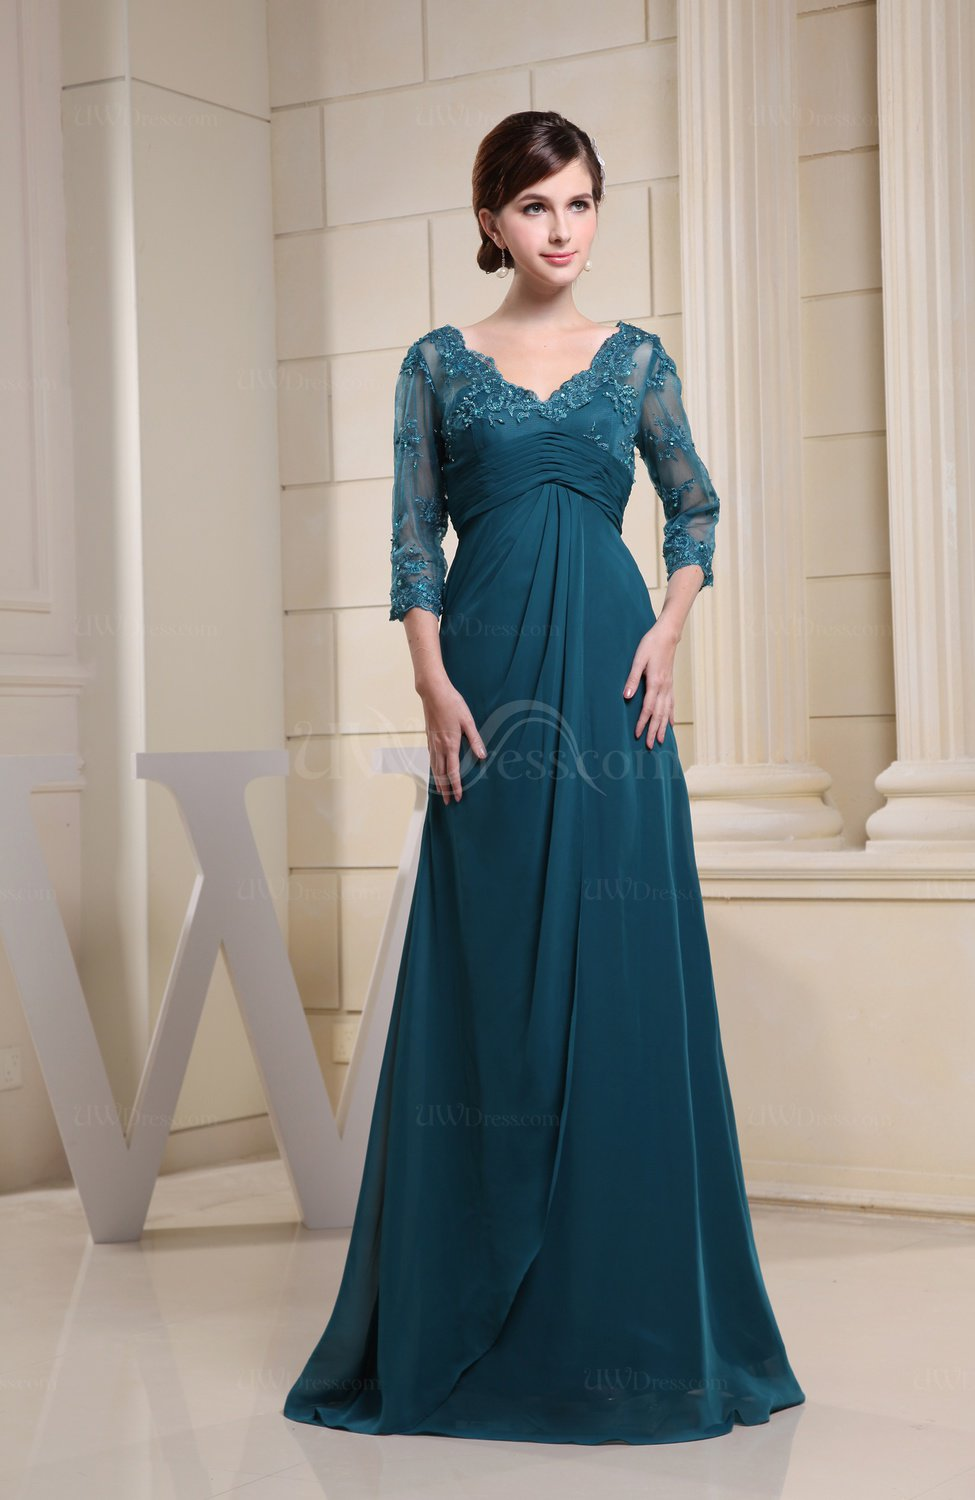 Elegant 3 4 Length Sleeve Zipper Floor Length Ruching